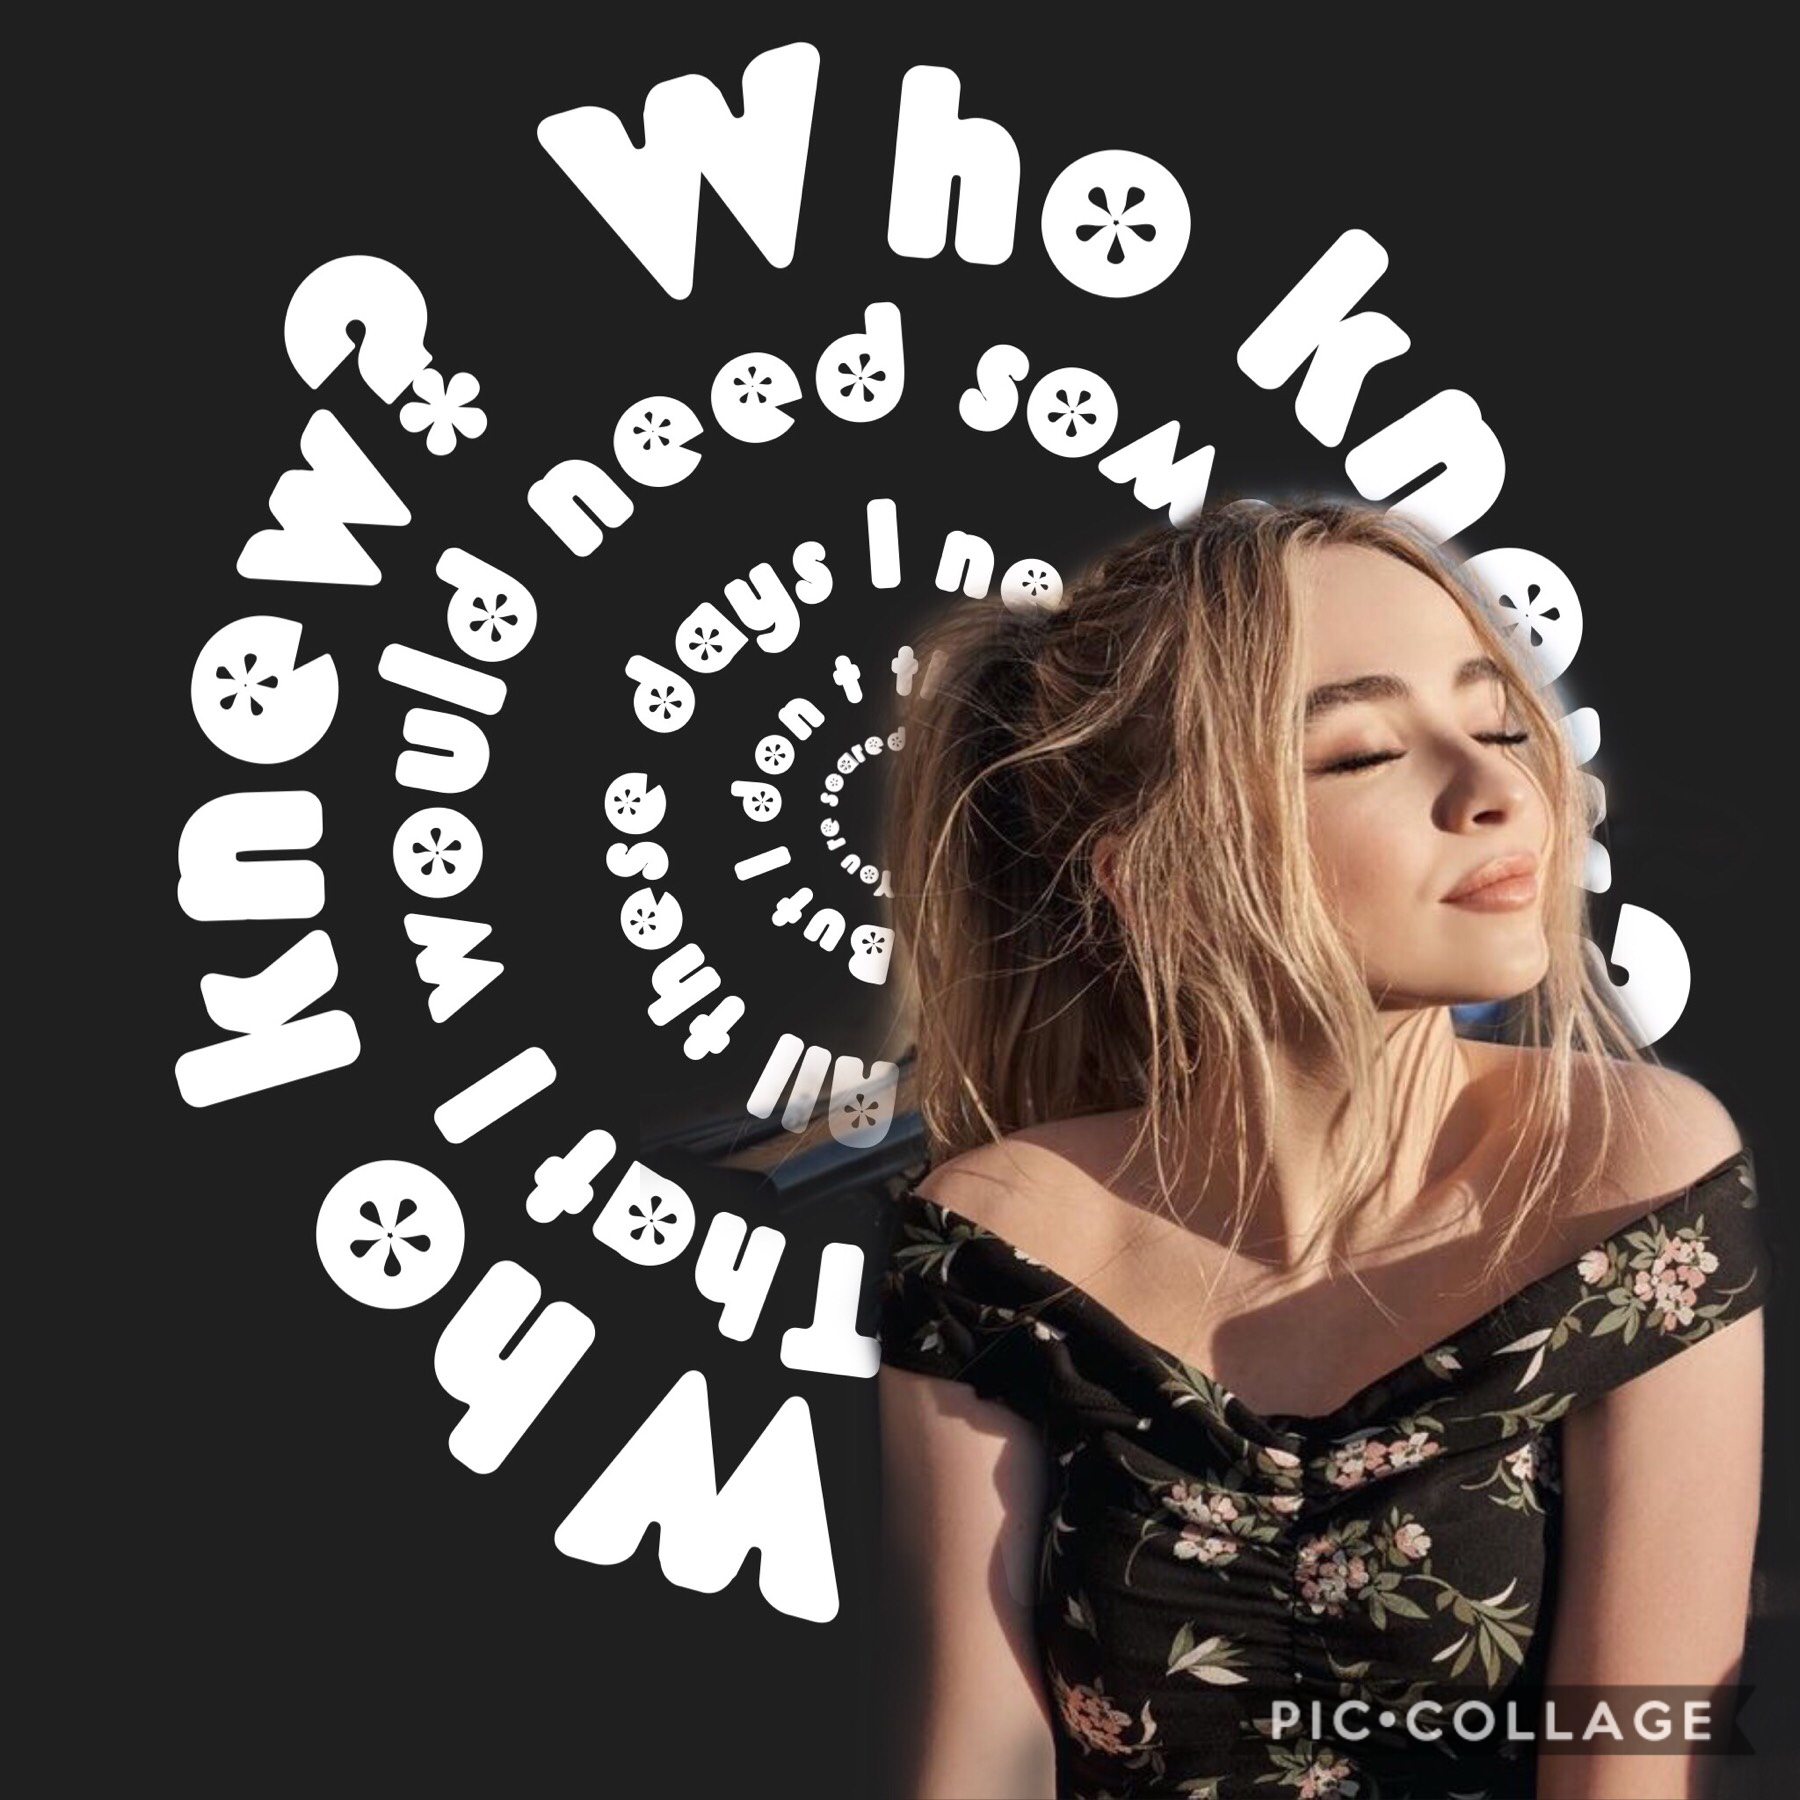 Selena Gomez is my mood right now idk why hahah oh just being random 😂😂😂🤪🤪🤪 QOTD- if you could go back in time and change one thing what would you change and why? AOTD- I wouldn't Change anything b/c I believe EEEEVERYTHING happens for a reason that's all